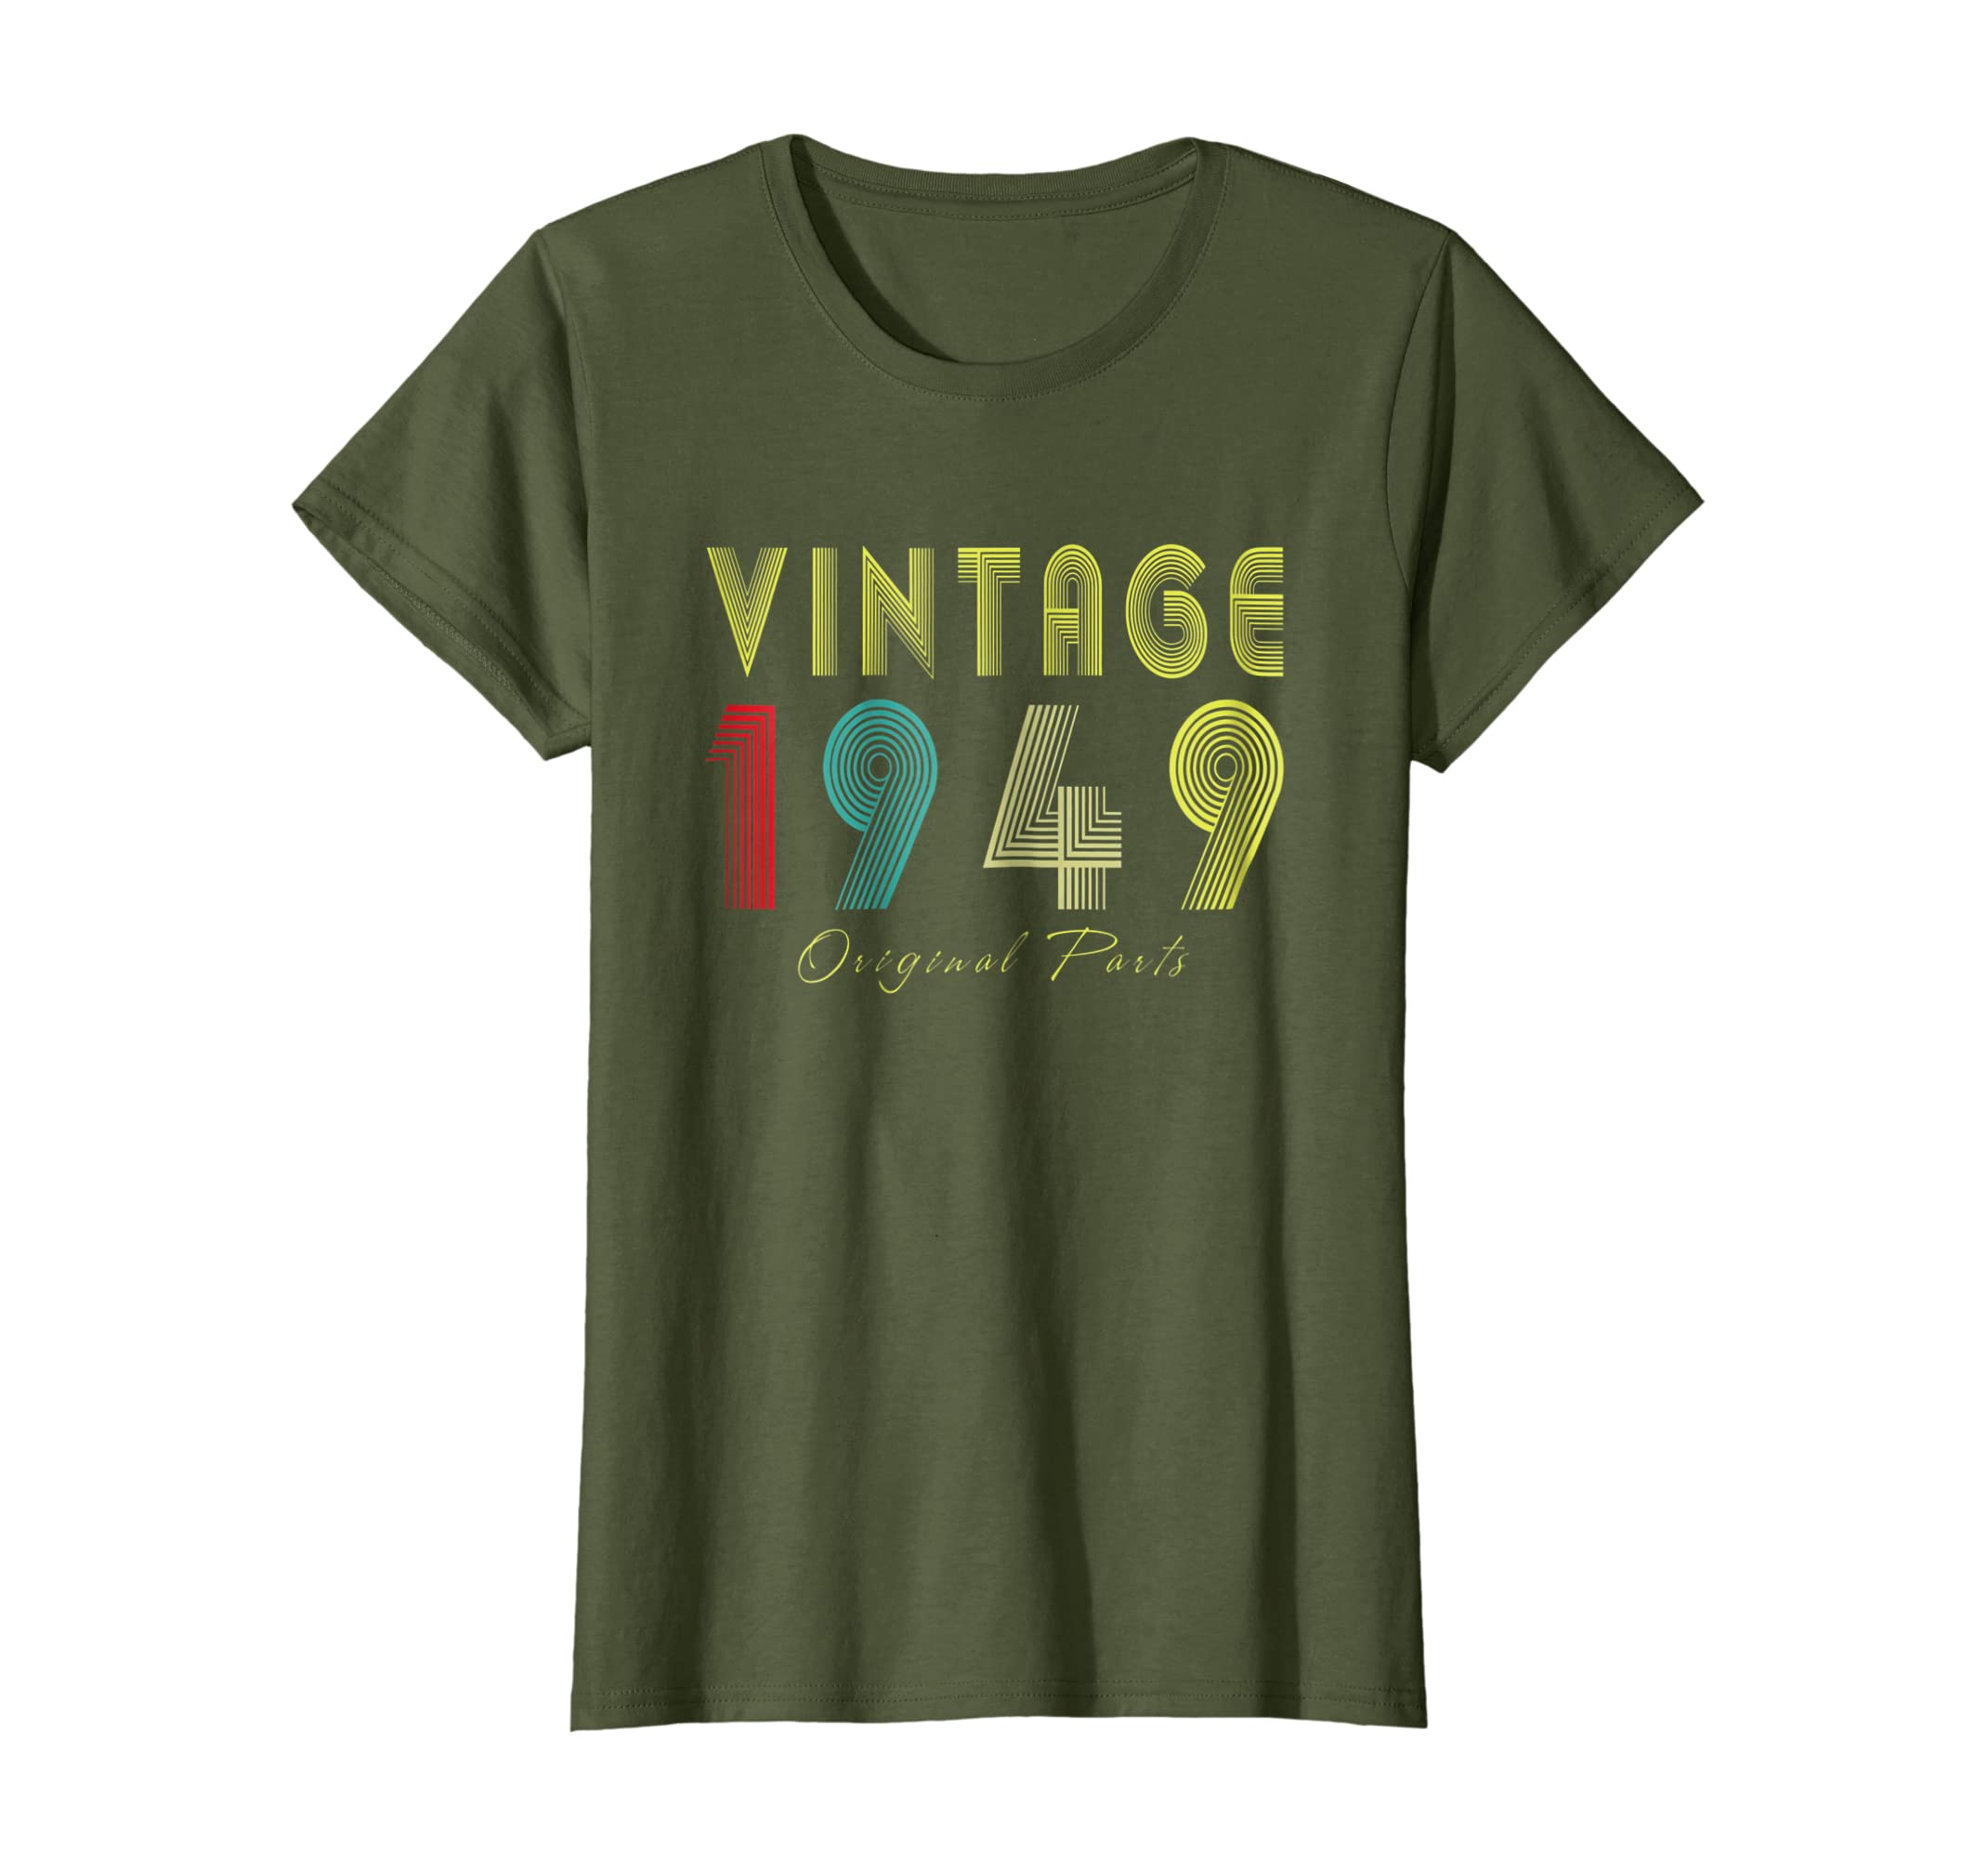 Amazon Vintage 1949 Original Parts Tee 70th Birthday Gifts T Shirt Clothing